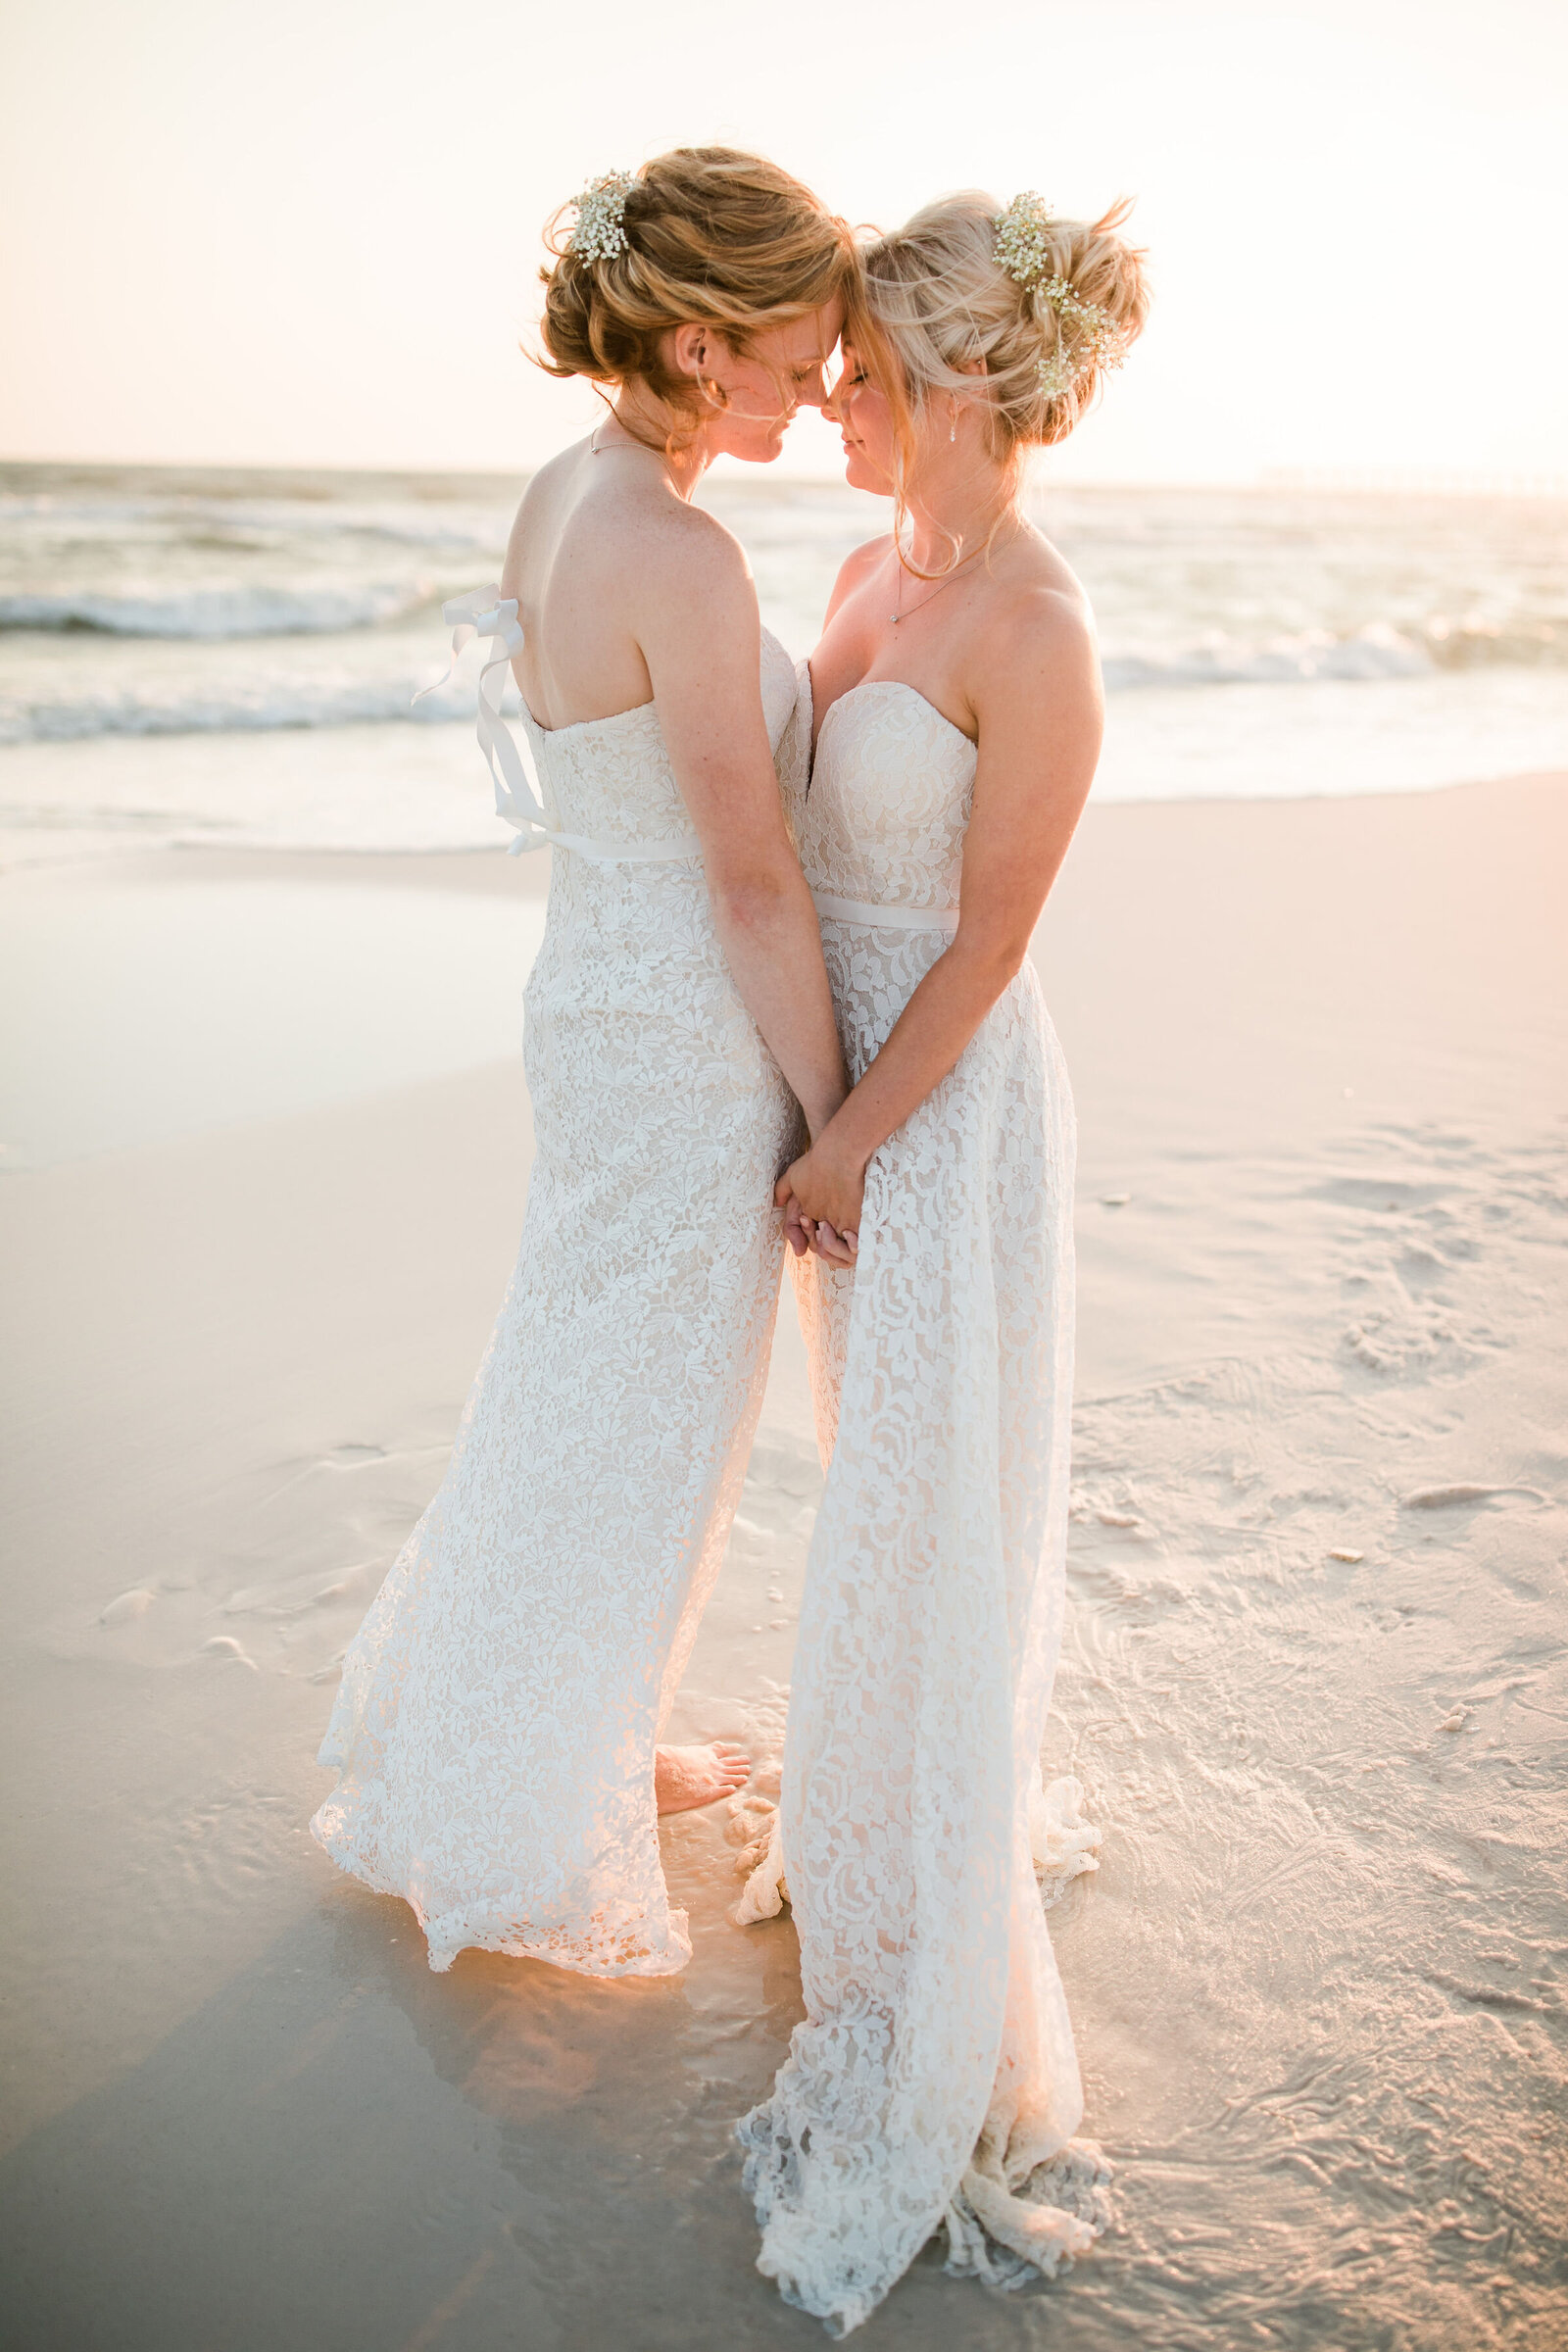 Navarre-lgbt-Beach-Elopement-Photographer-Adina-Preston-Photography-October-2020-63